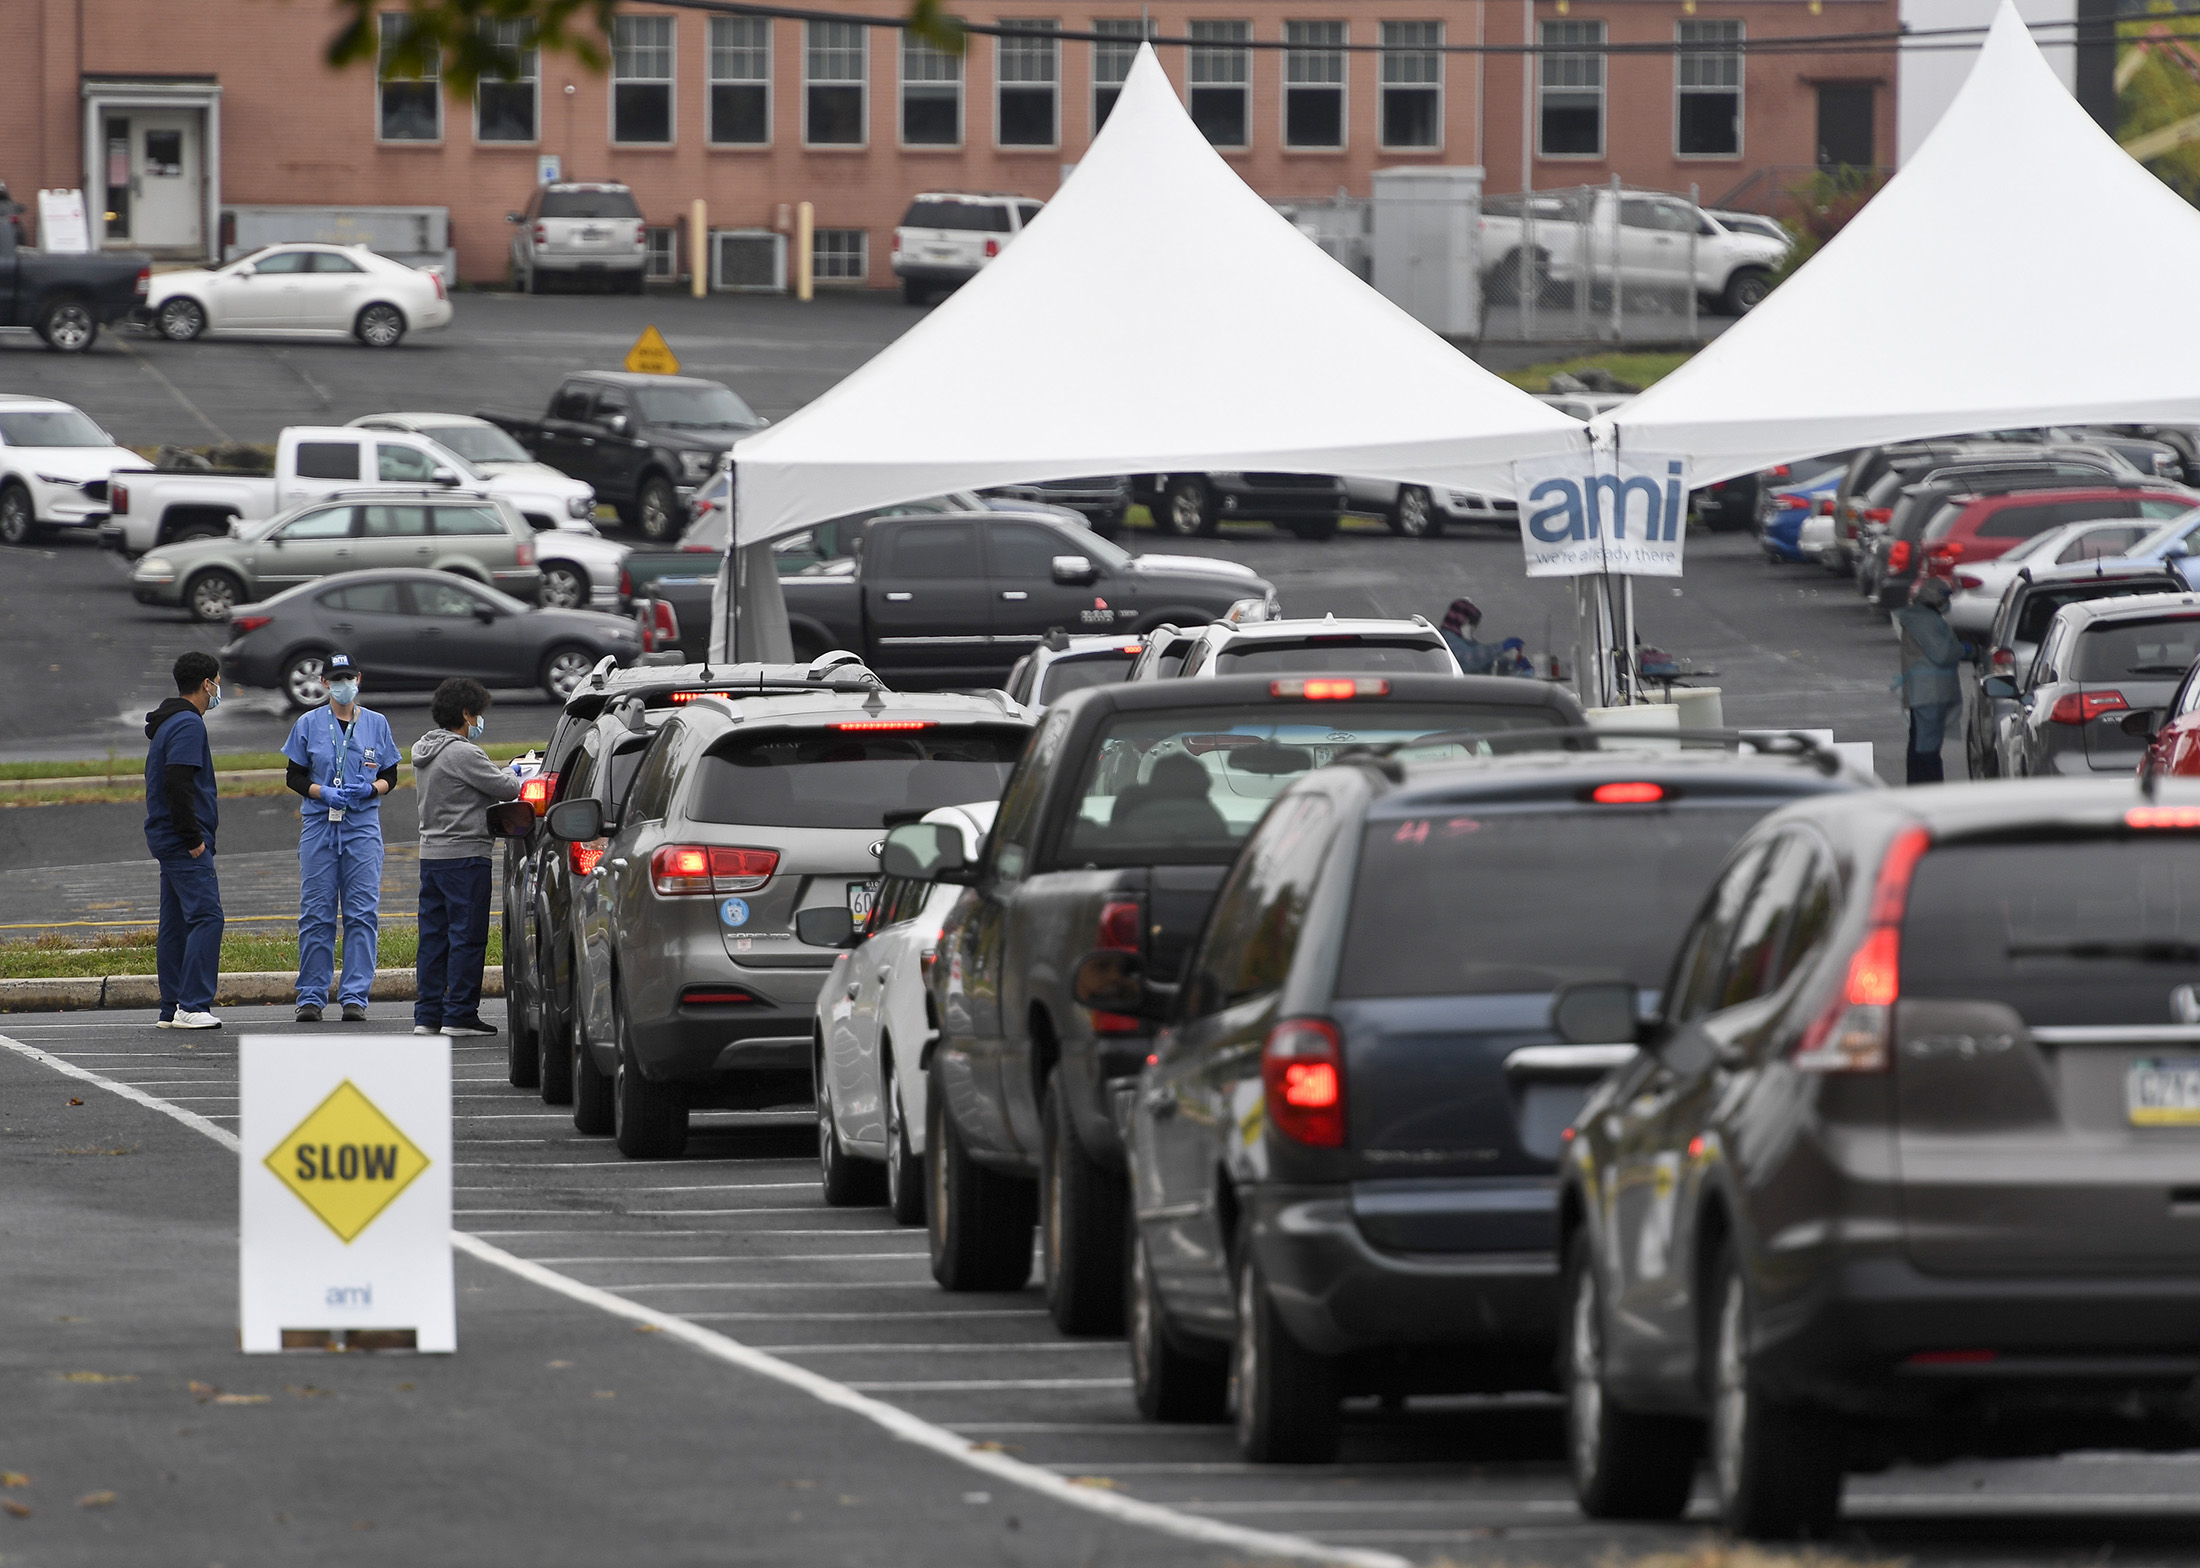 People wait in line for COVID-19 testing outside of the FirstEnergy Stadium in Reading, Pennsylvania, on October 13.